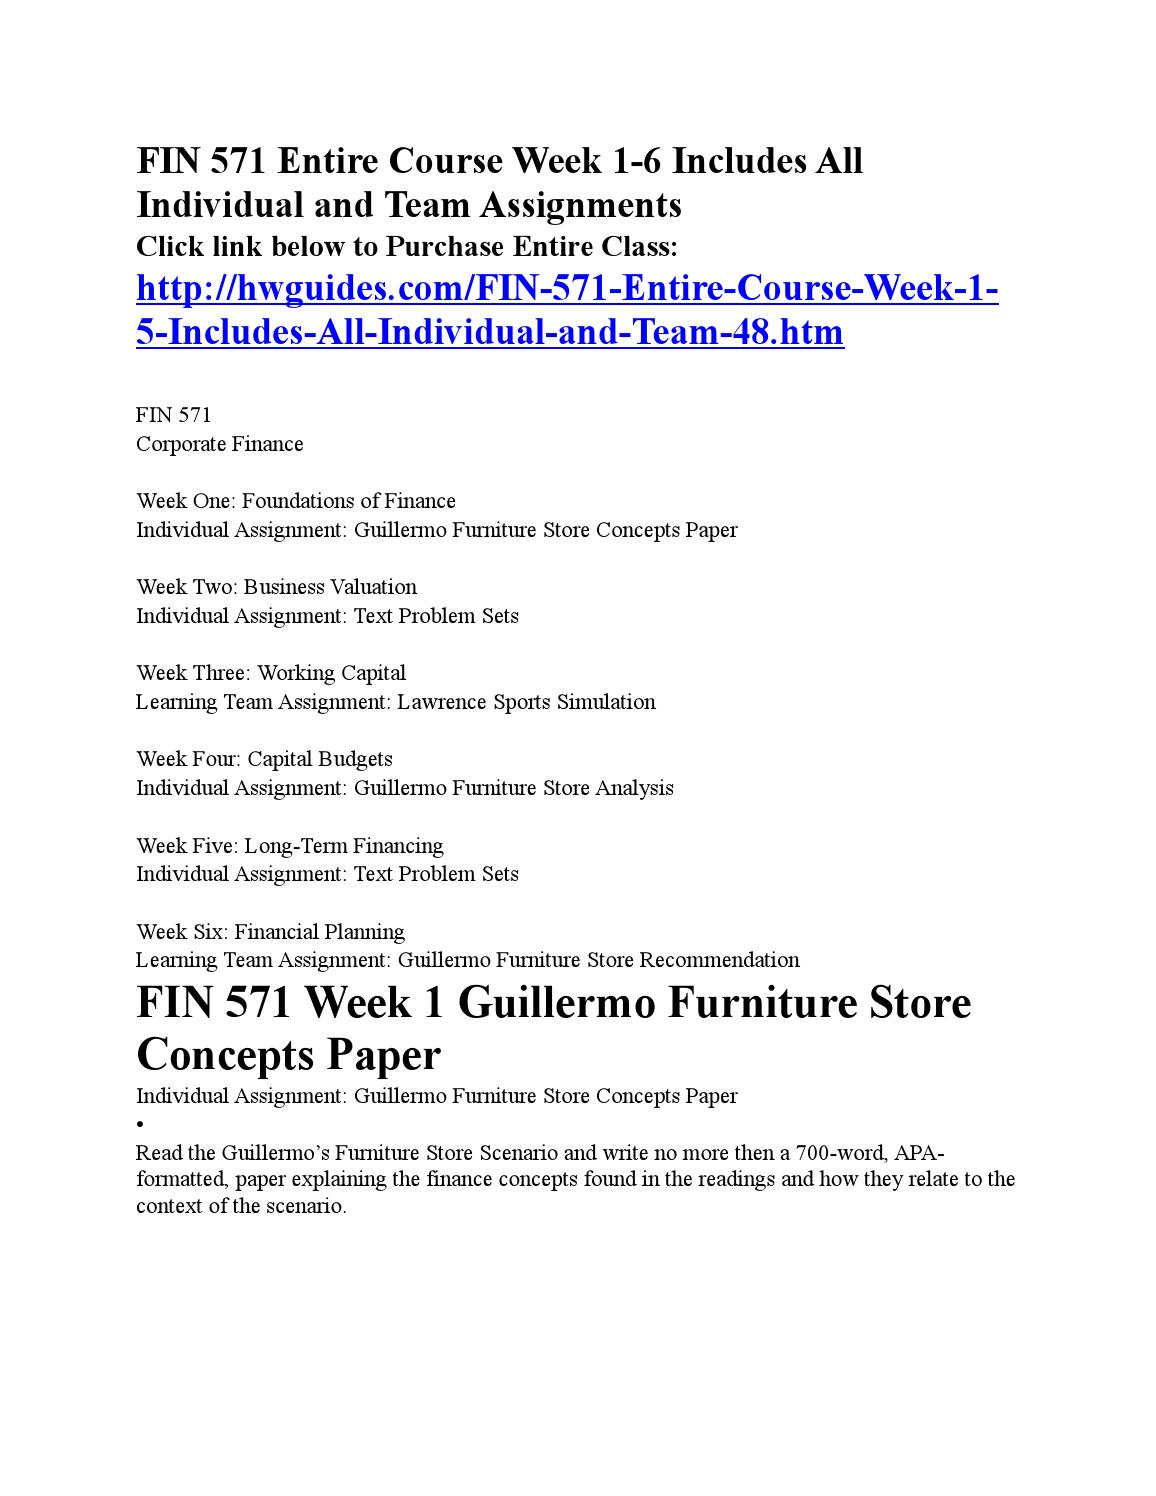 financial concepts in guillermo furniture store Professionally written papers on this topic: the guillermo furniture store flexible budget this 3 page paper is based ion a case study supplied by the student with the need for a flexible budget to be produced.